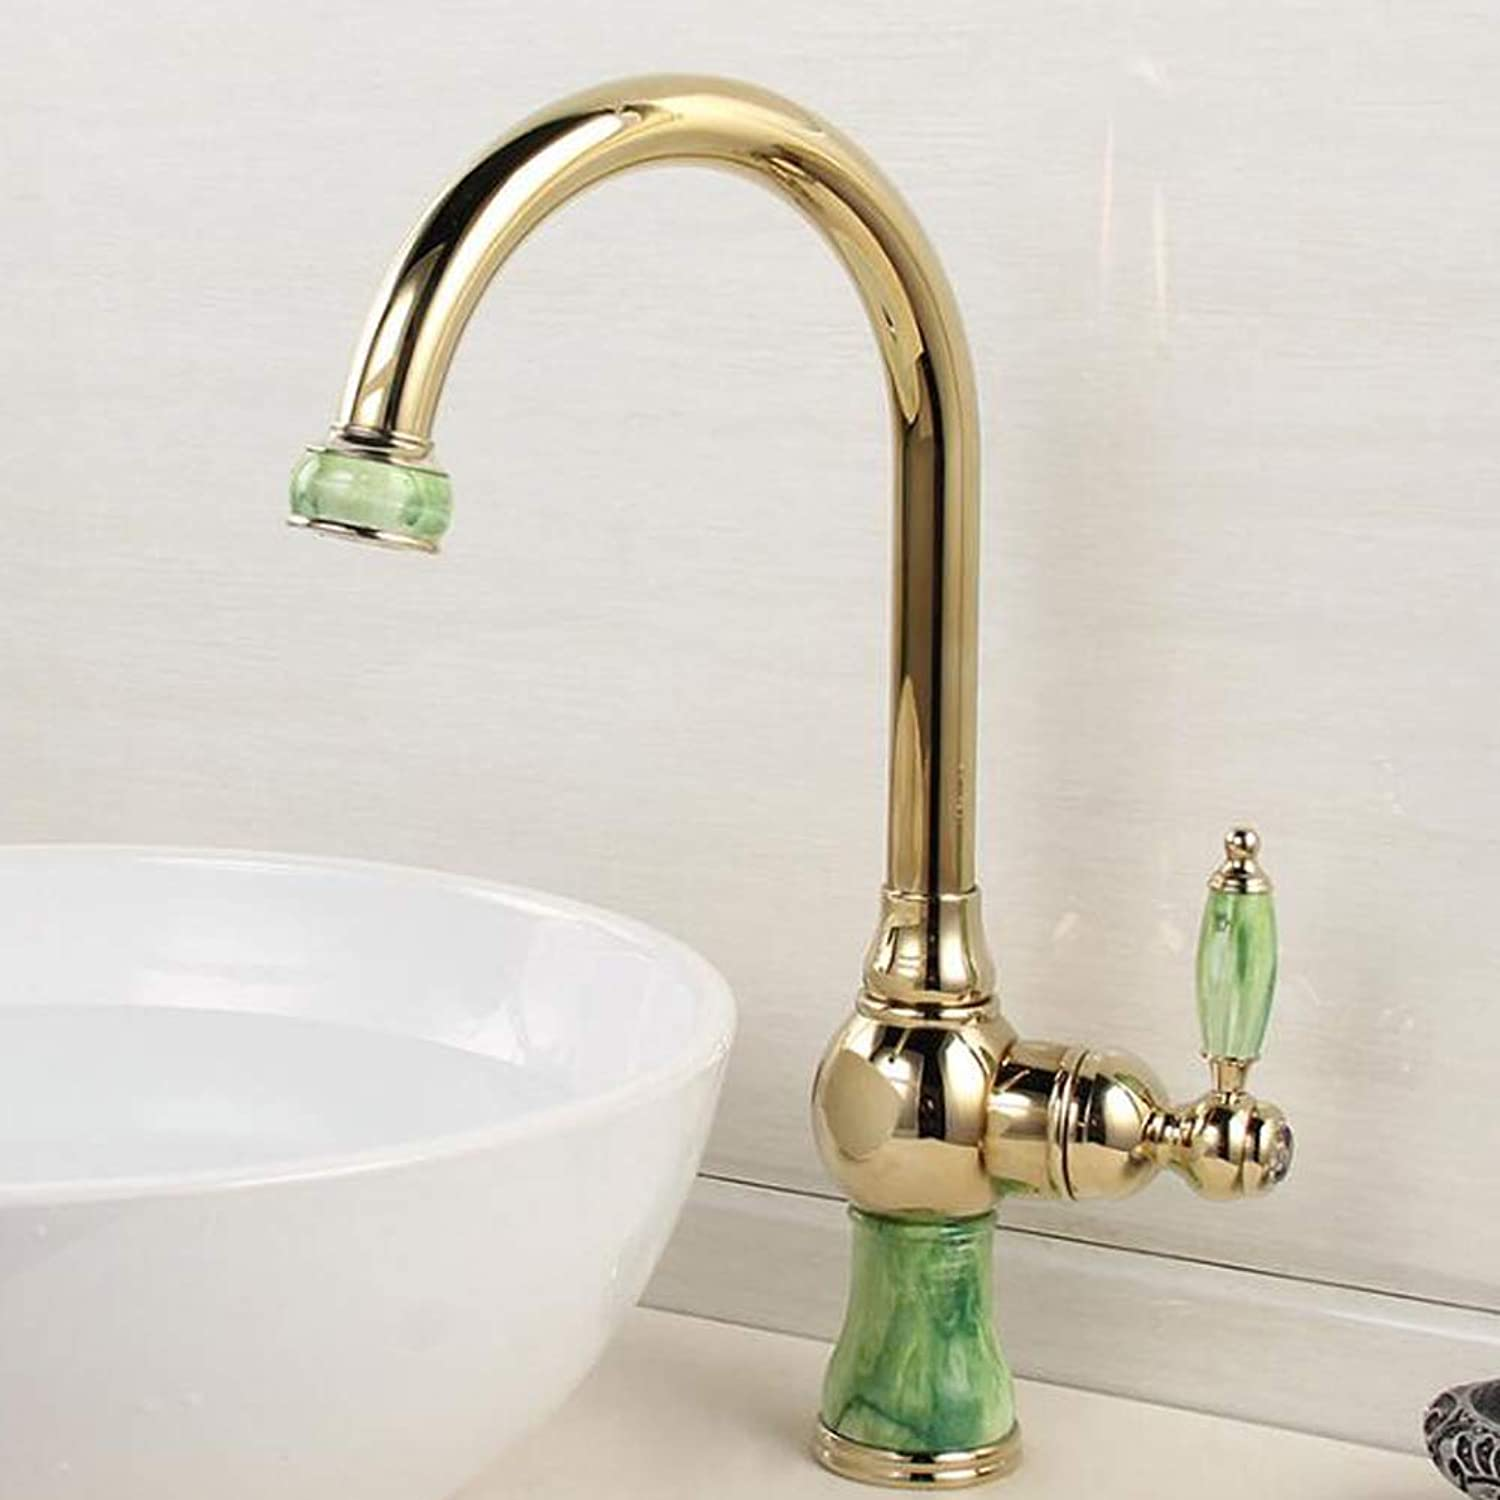 BFTAPS 360° Swivel Jade Stone Kitchen Mixer Tap gold-Plated Brass Tall Kitchen Sink Tap Vintage Hot And Cold Water Basin Faucet,goldFaucet